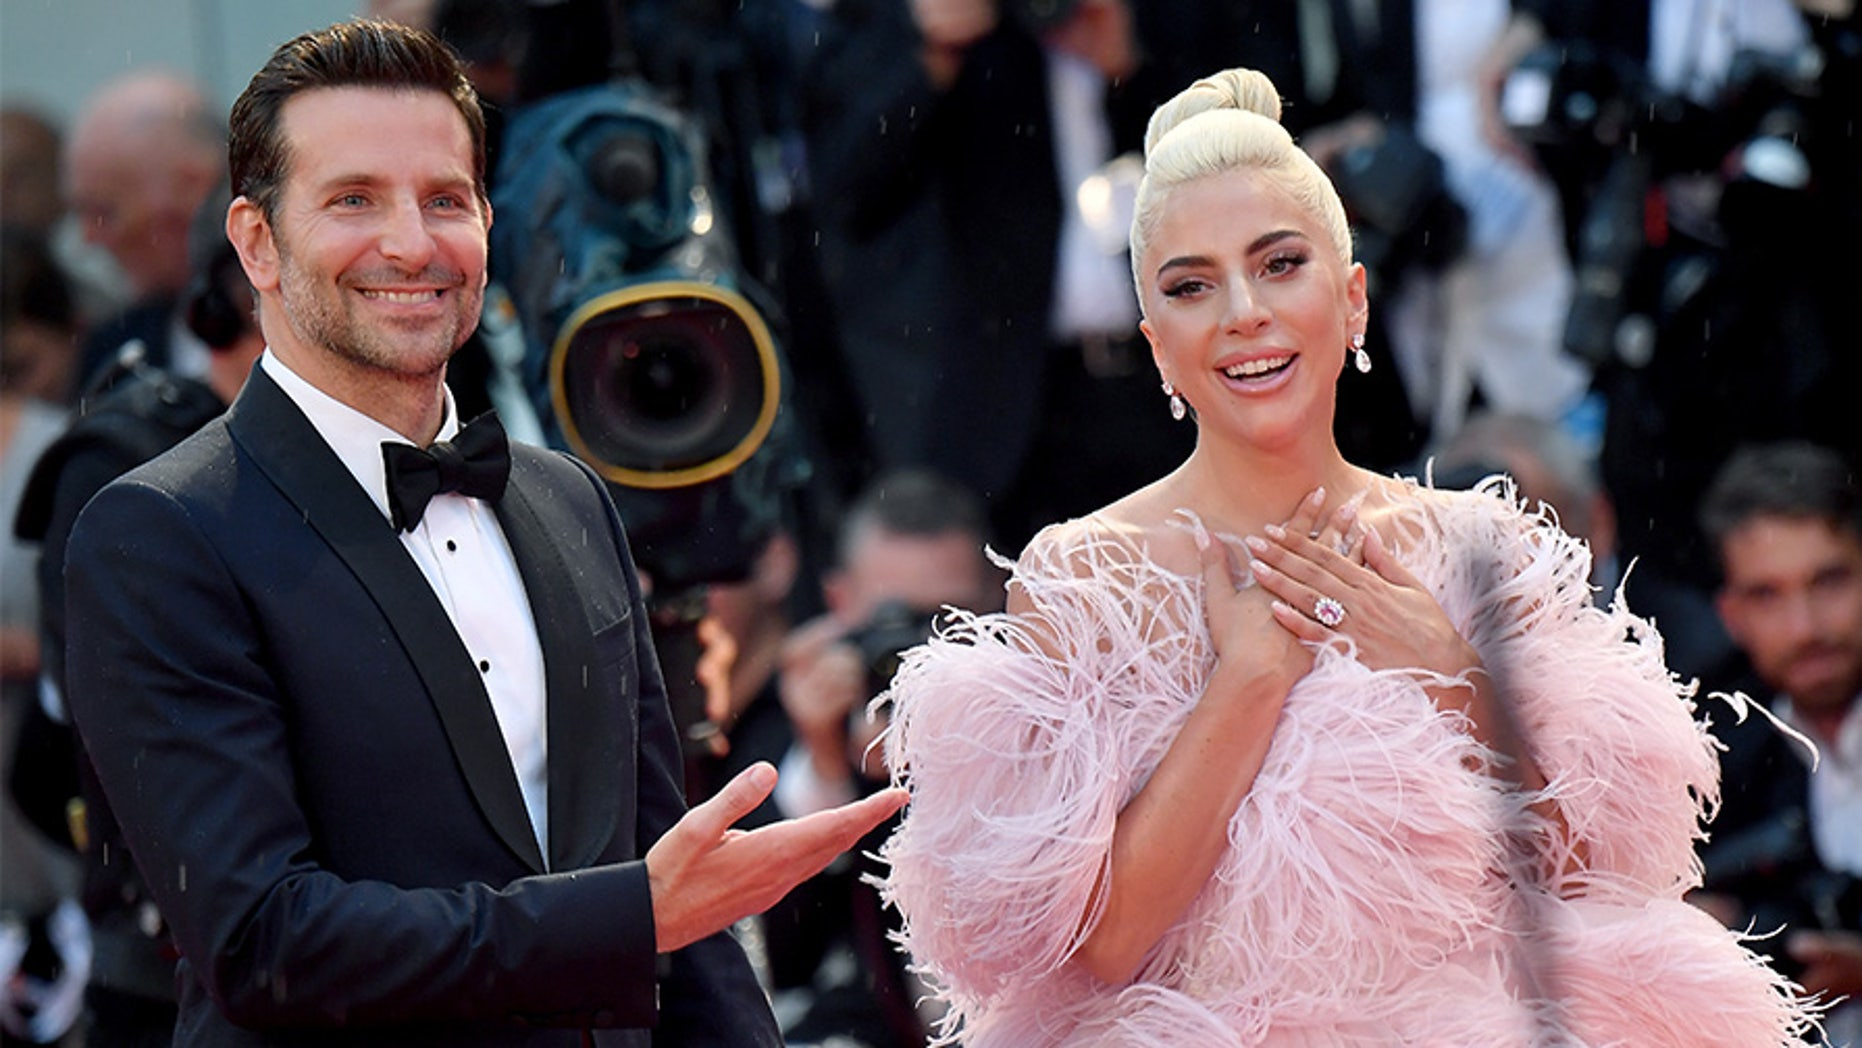 Who is bradley cooper hookup now 2019